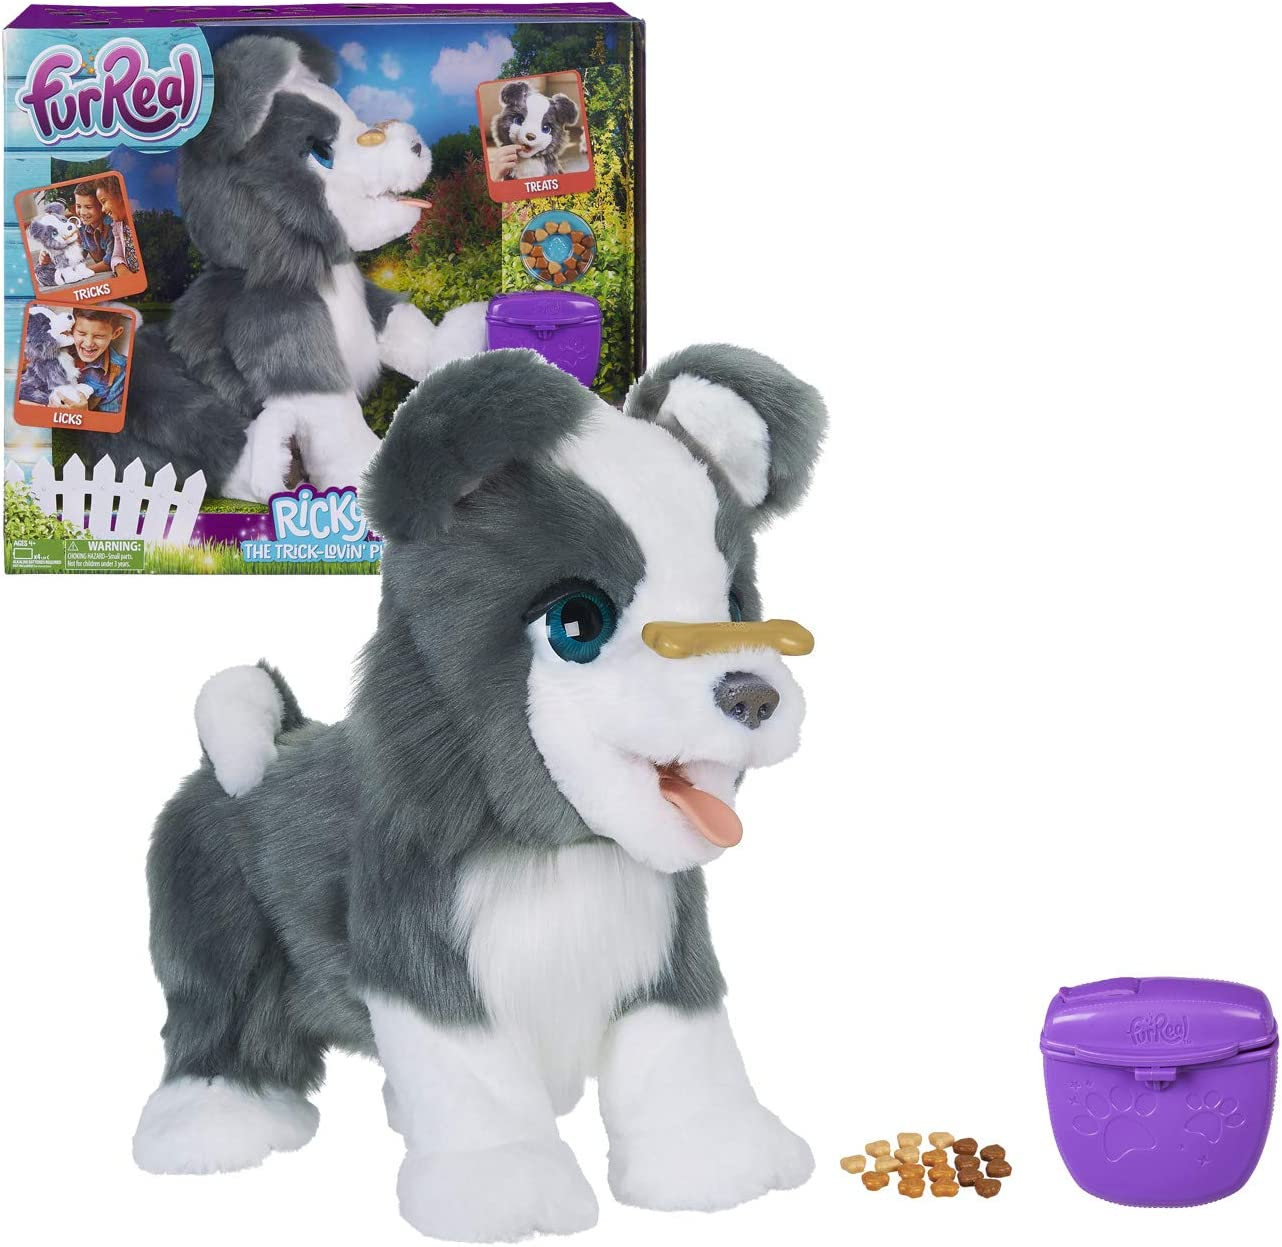 image of a furReal plush pet toy for girls, in a box.